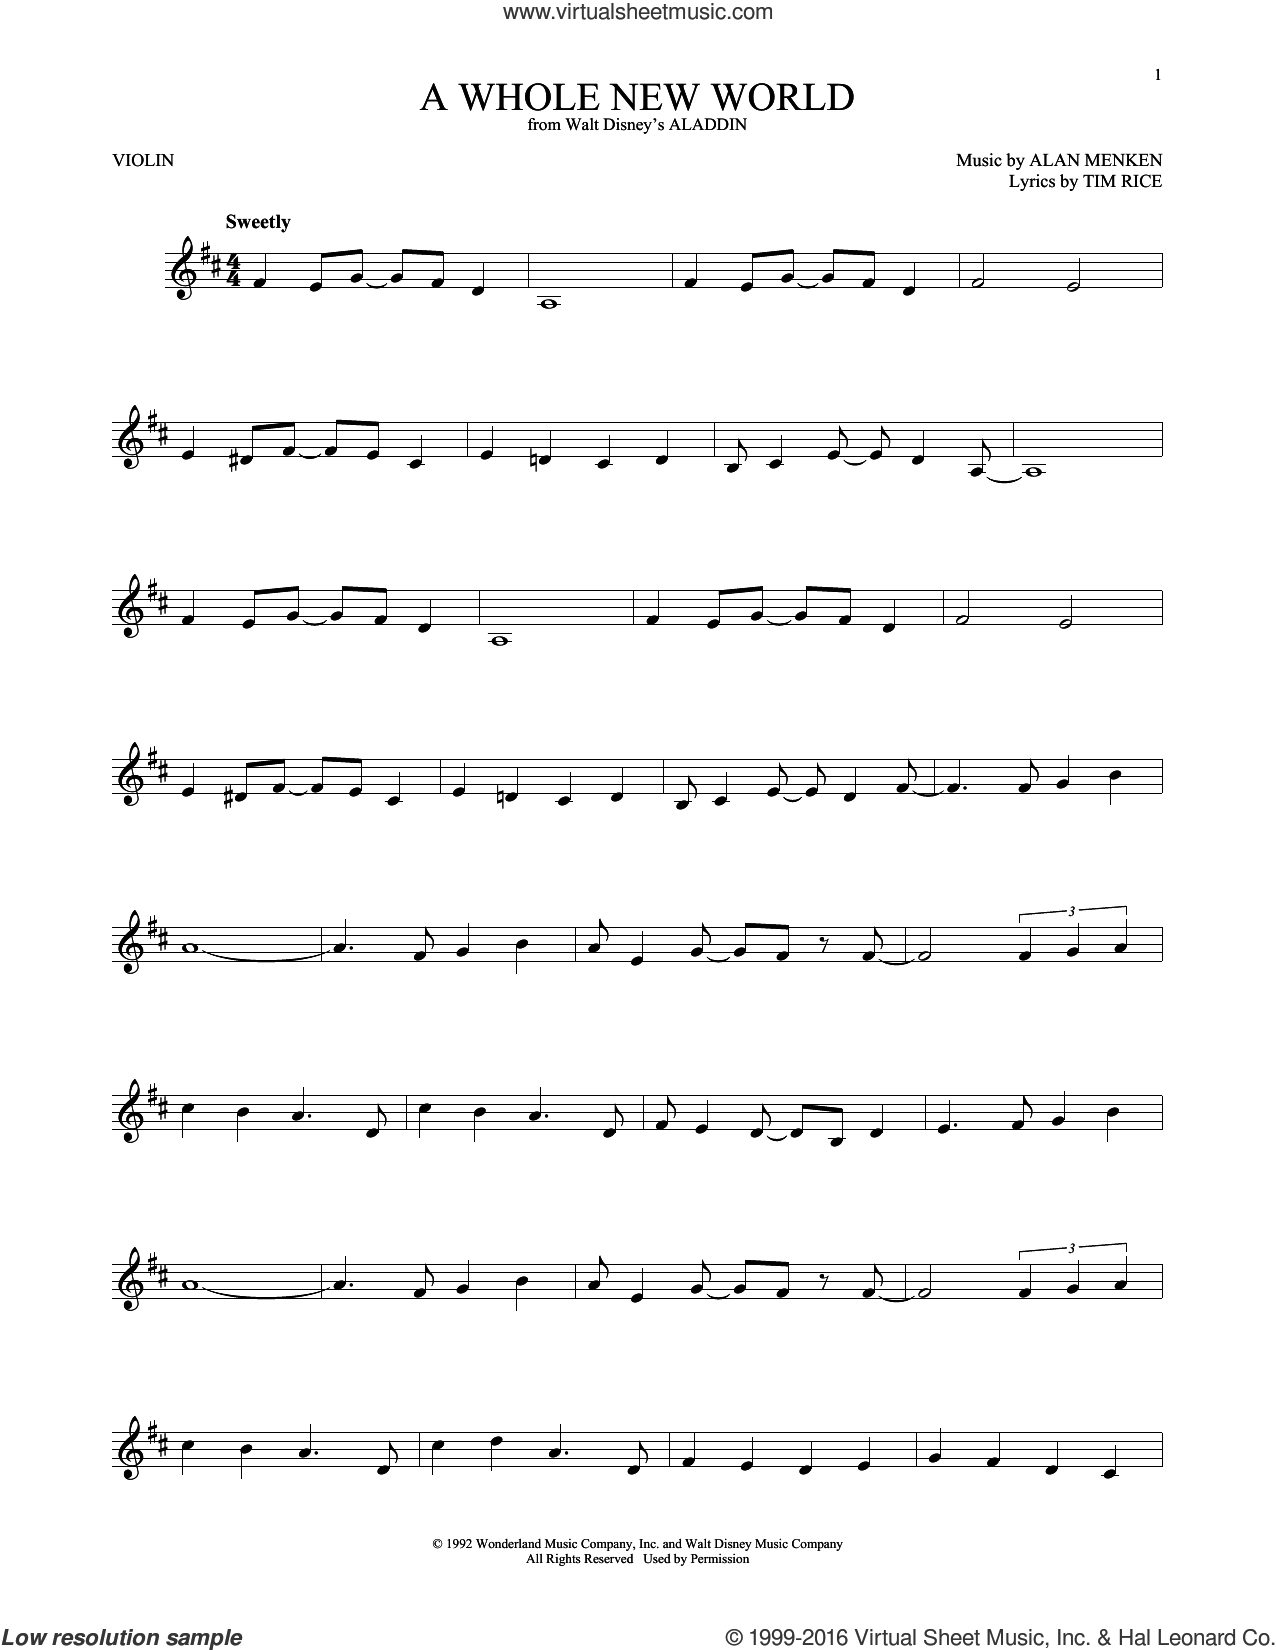 A Whole New World Chords Menken A Whole New World From Aladdin Sheet Music For Violin Solo